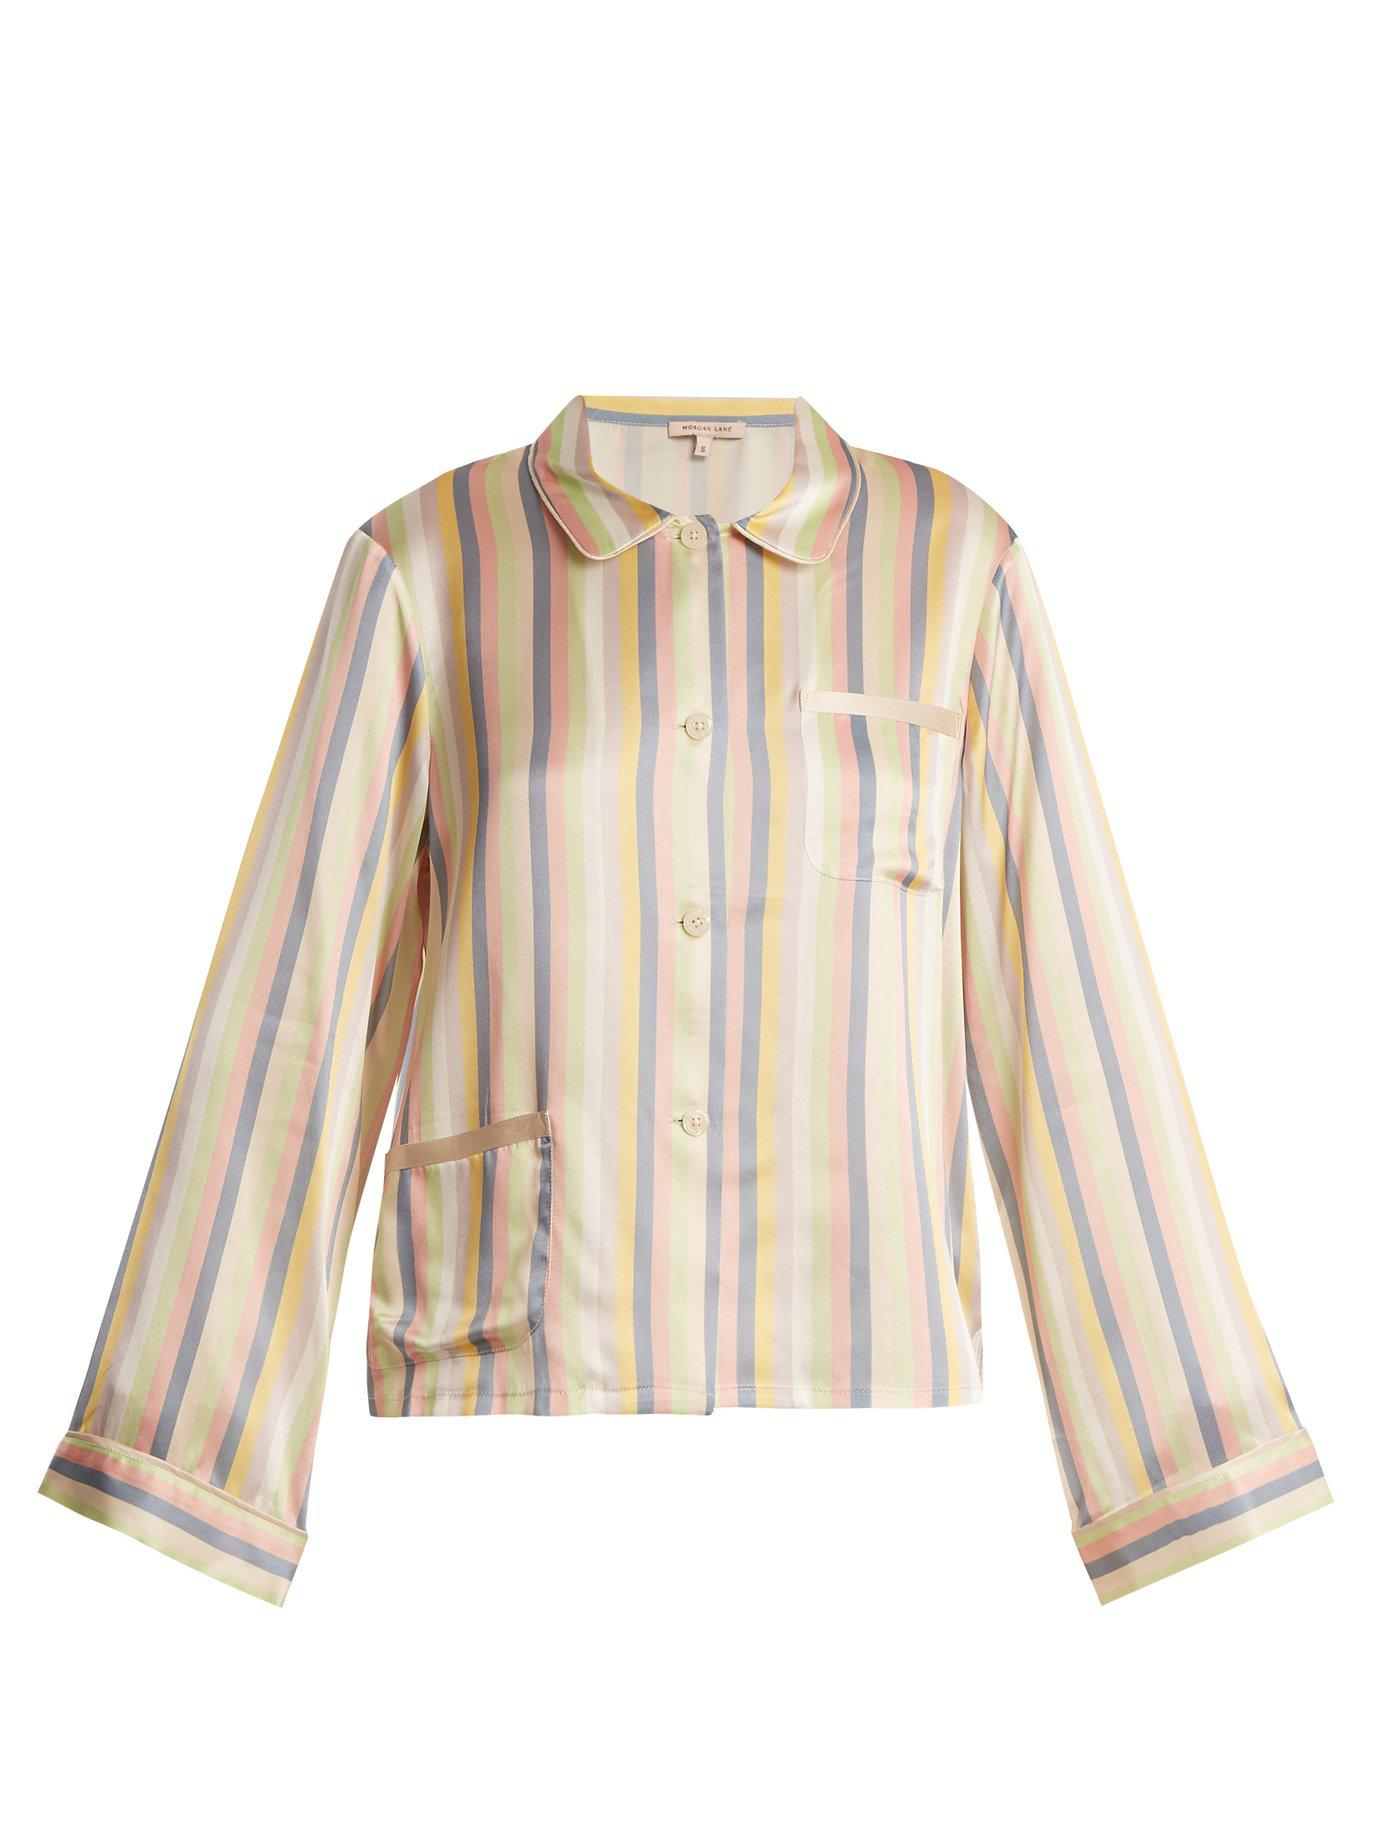 Lyst - Morgan Lane Ruthie Striped Silk Pyjama Top in Natural 932a2f4b6